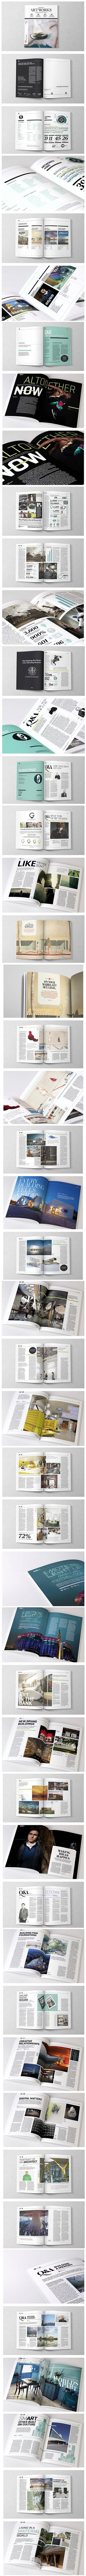 Artworks - The Arts  Business Journal #002 by The Design Surgery